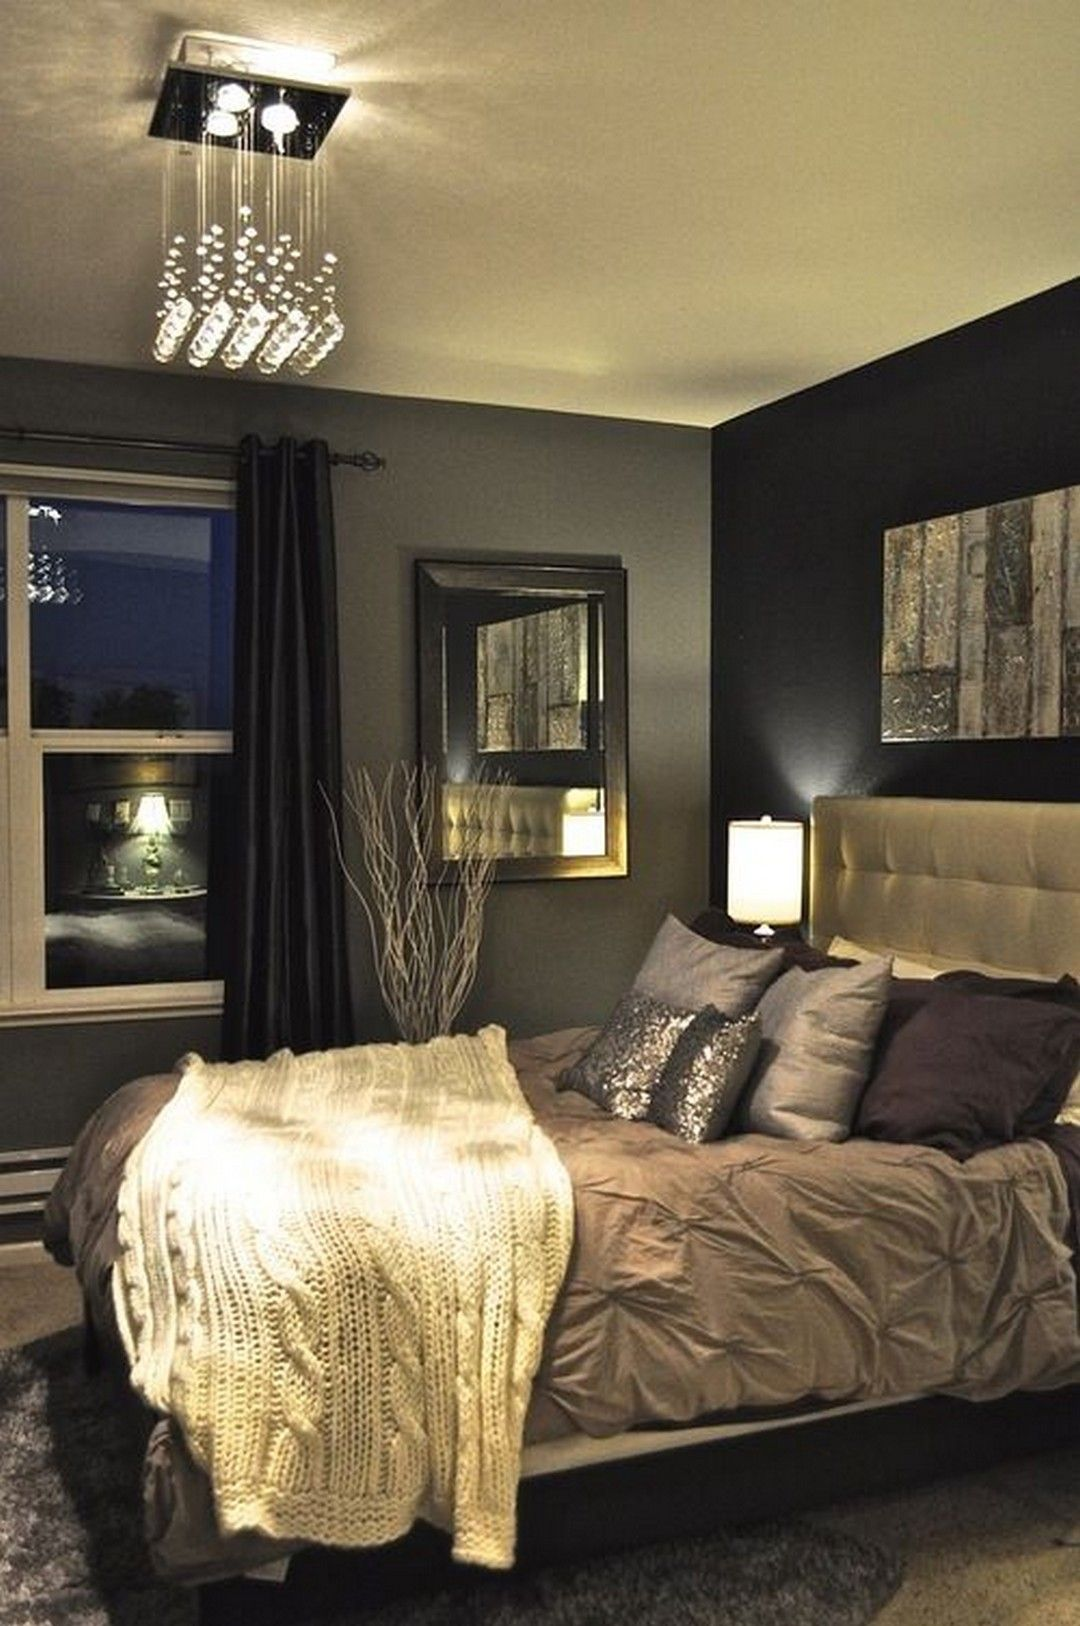 20+ Best Ideas to Make Your Bedroom Extra Cozy and Romantic ...